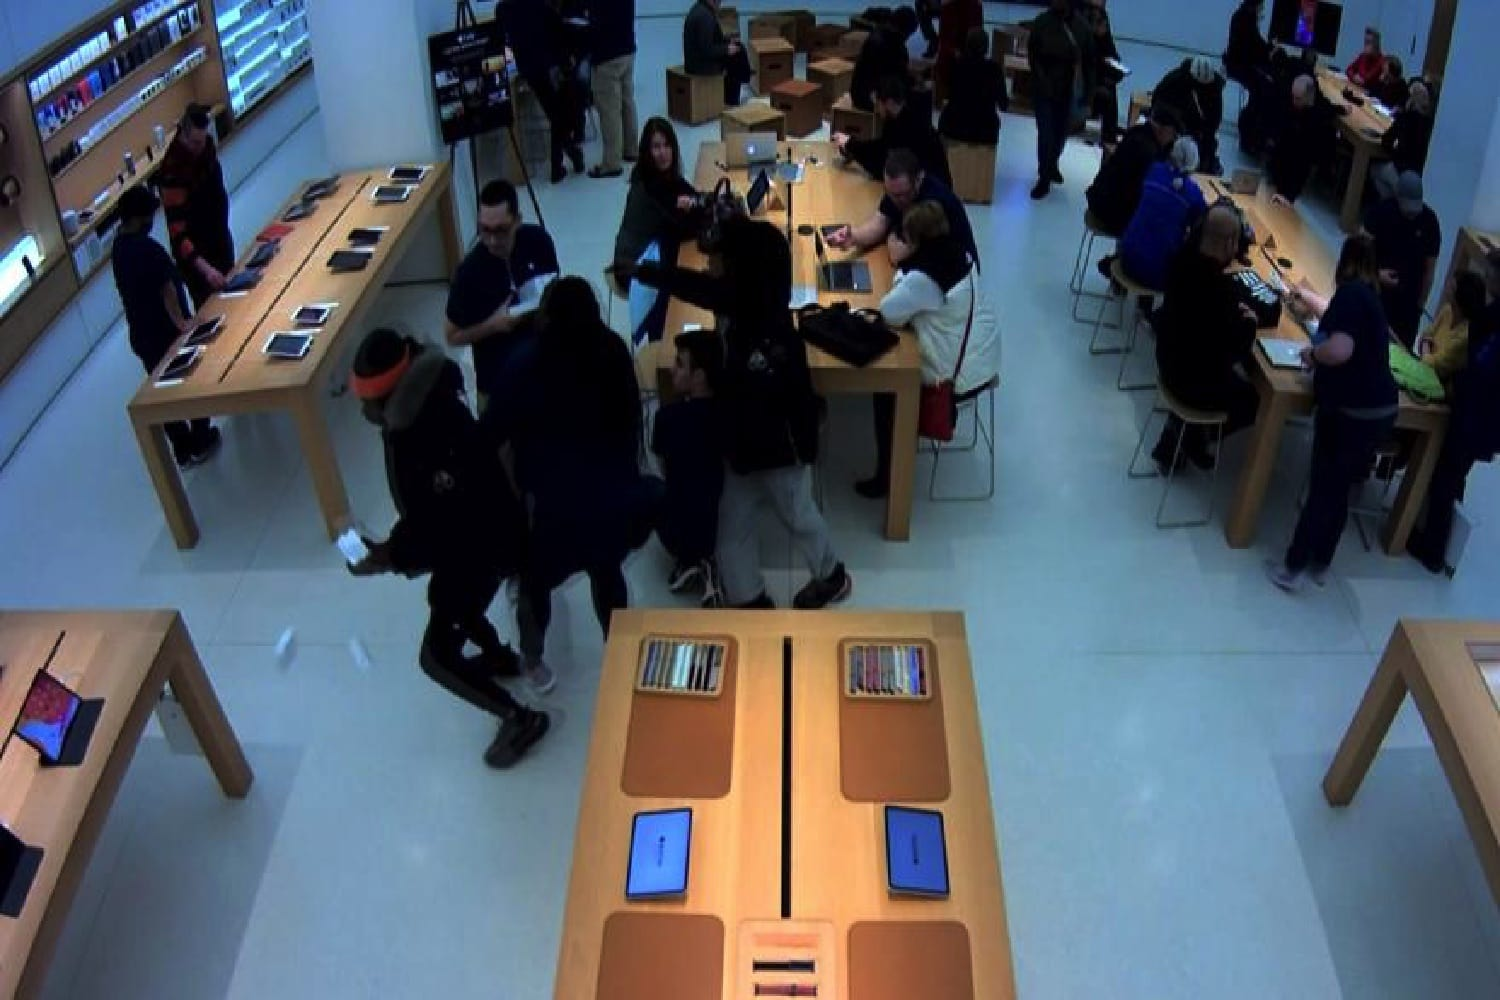 A security camera image from the Mayfair Apple Store in Wauwatosa, Wisconsin, shows alleged thieves in action.